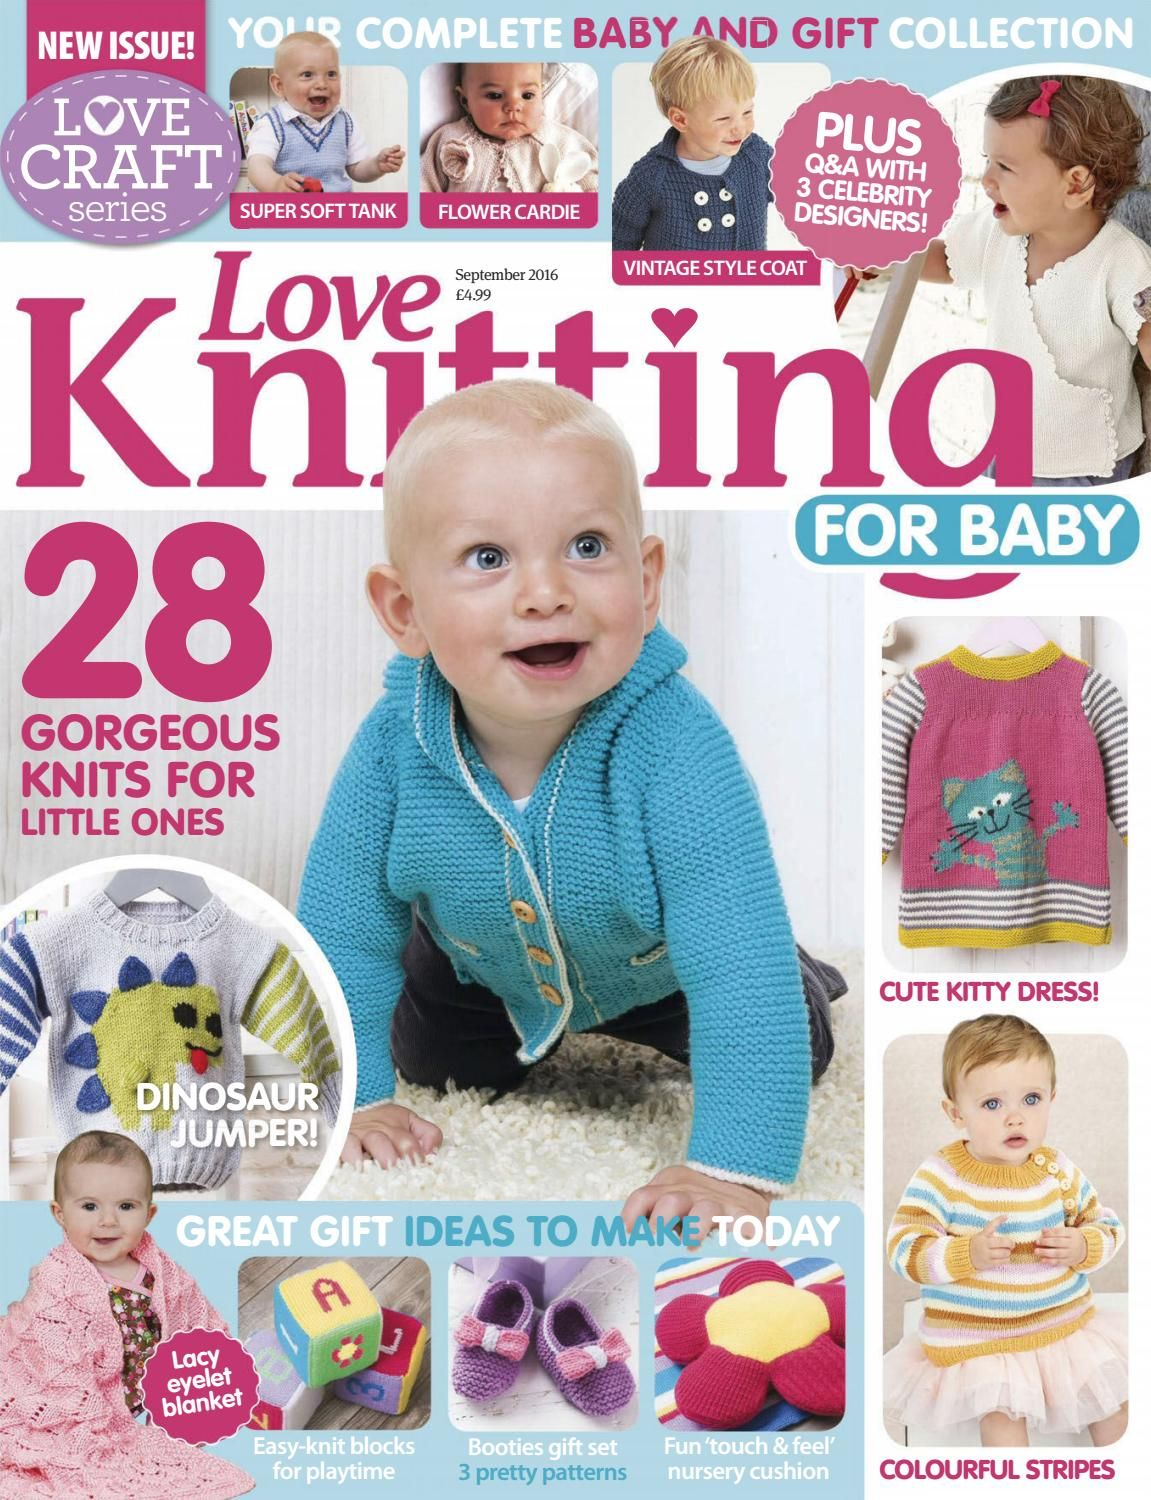 Love knitting for babies september 2016 by lin hunh issuu love knitting for babies september 2016 by lin hunh issuu bankloansurffo Choice Image